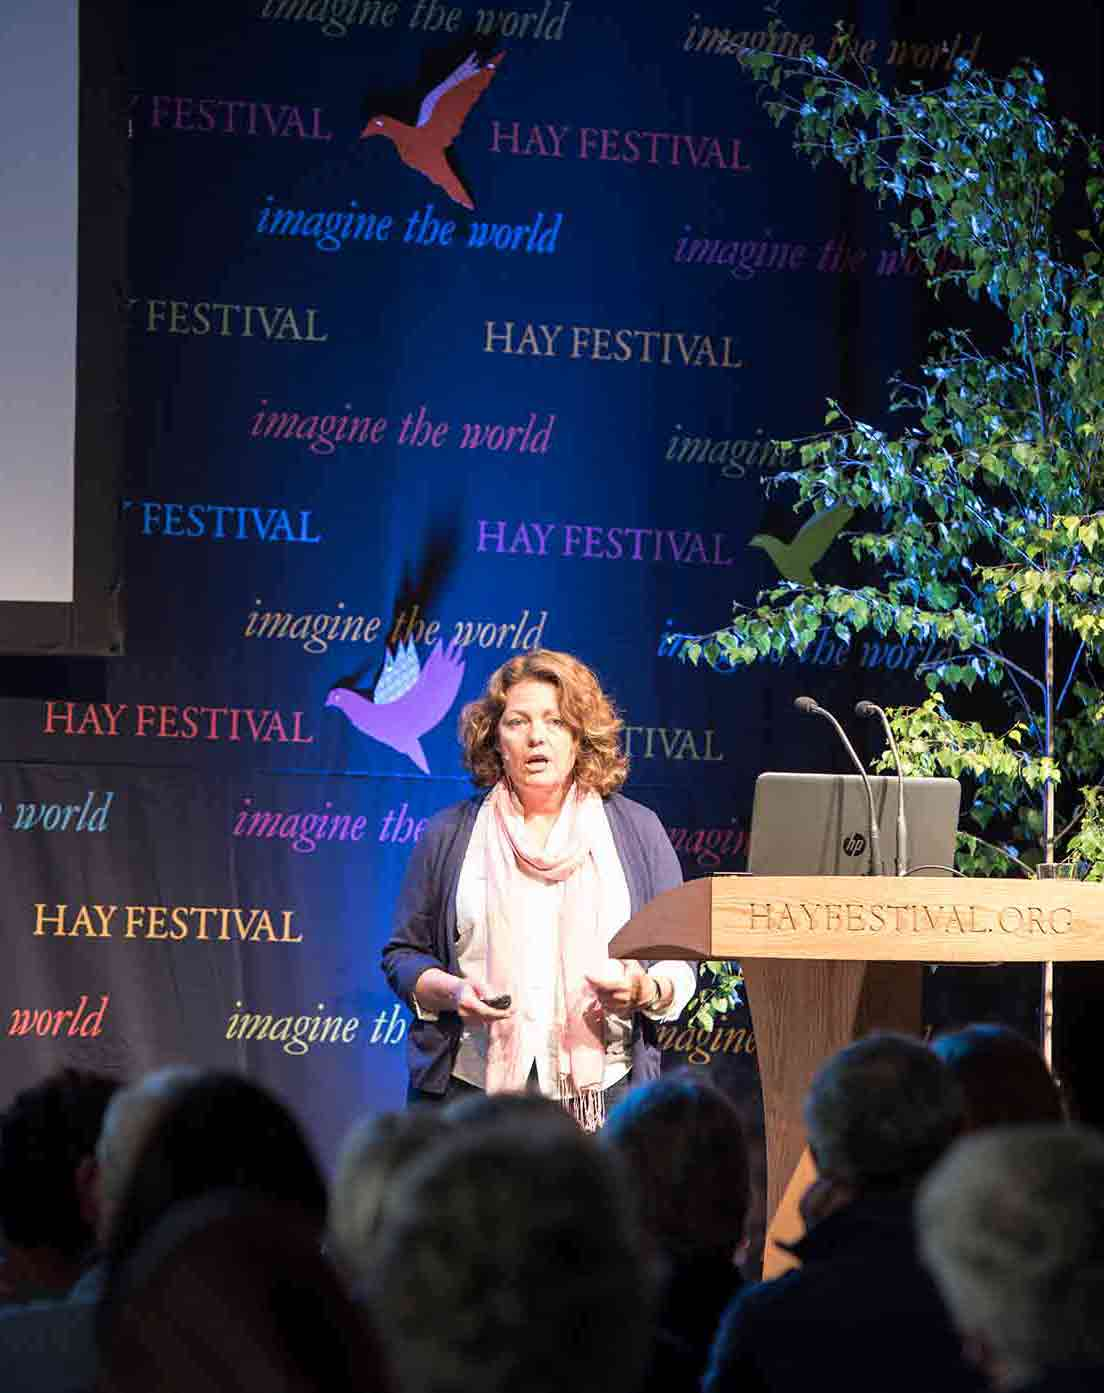 Caroline Ingraham Speaking At The Hay Festival In 2016